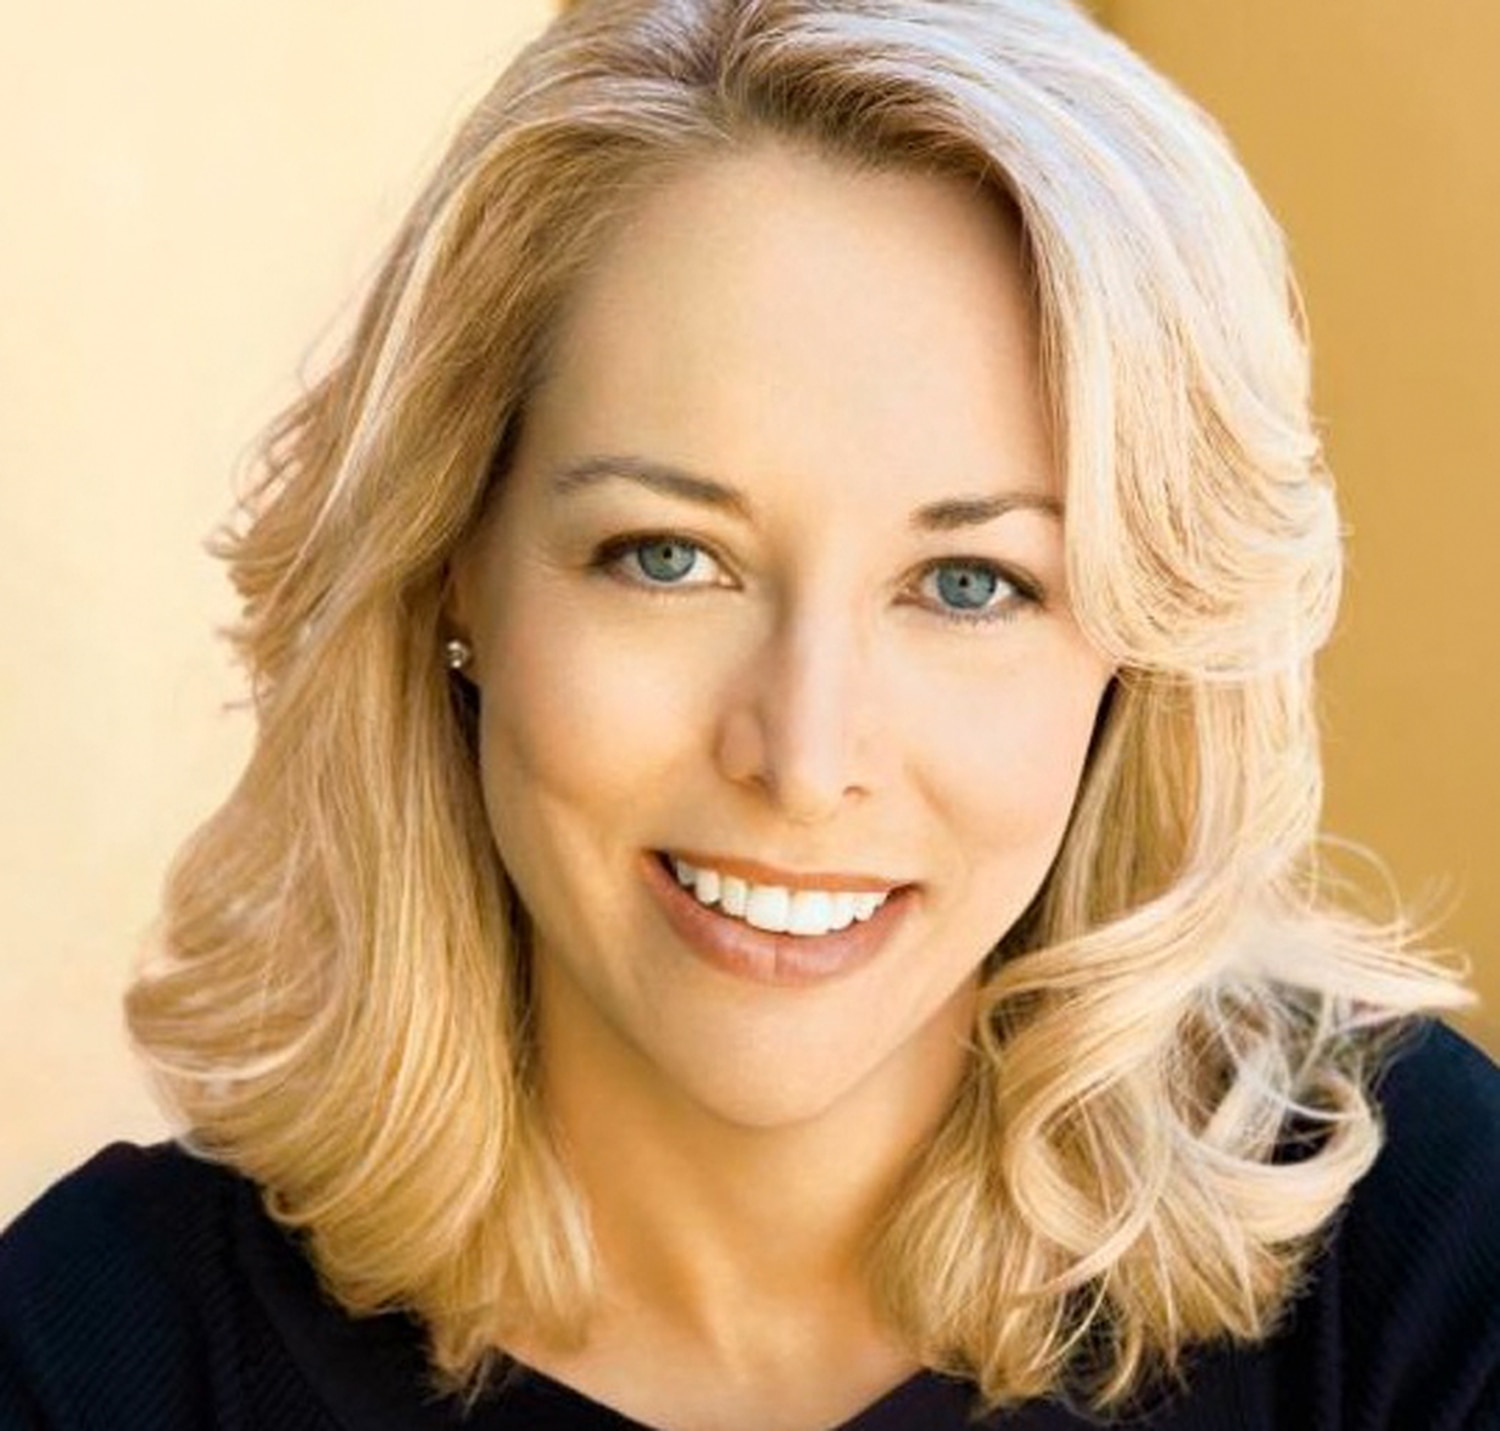 Former CIA agent Valerie Plame Wilson, shown here on the cover of her book, Fair Game, commends The Post for revealing the bloated, inefficient intelligence bureaucracy.